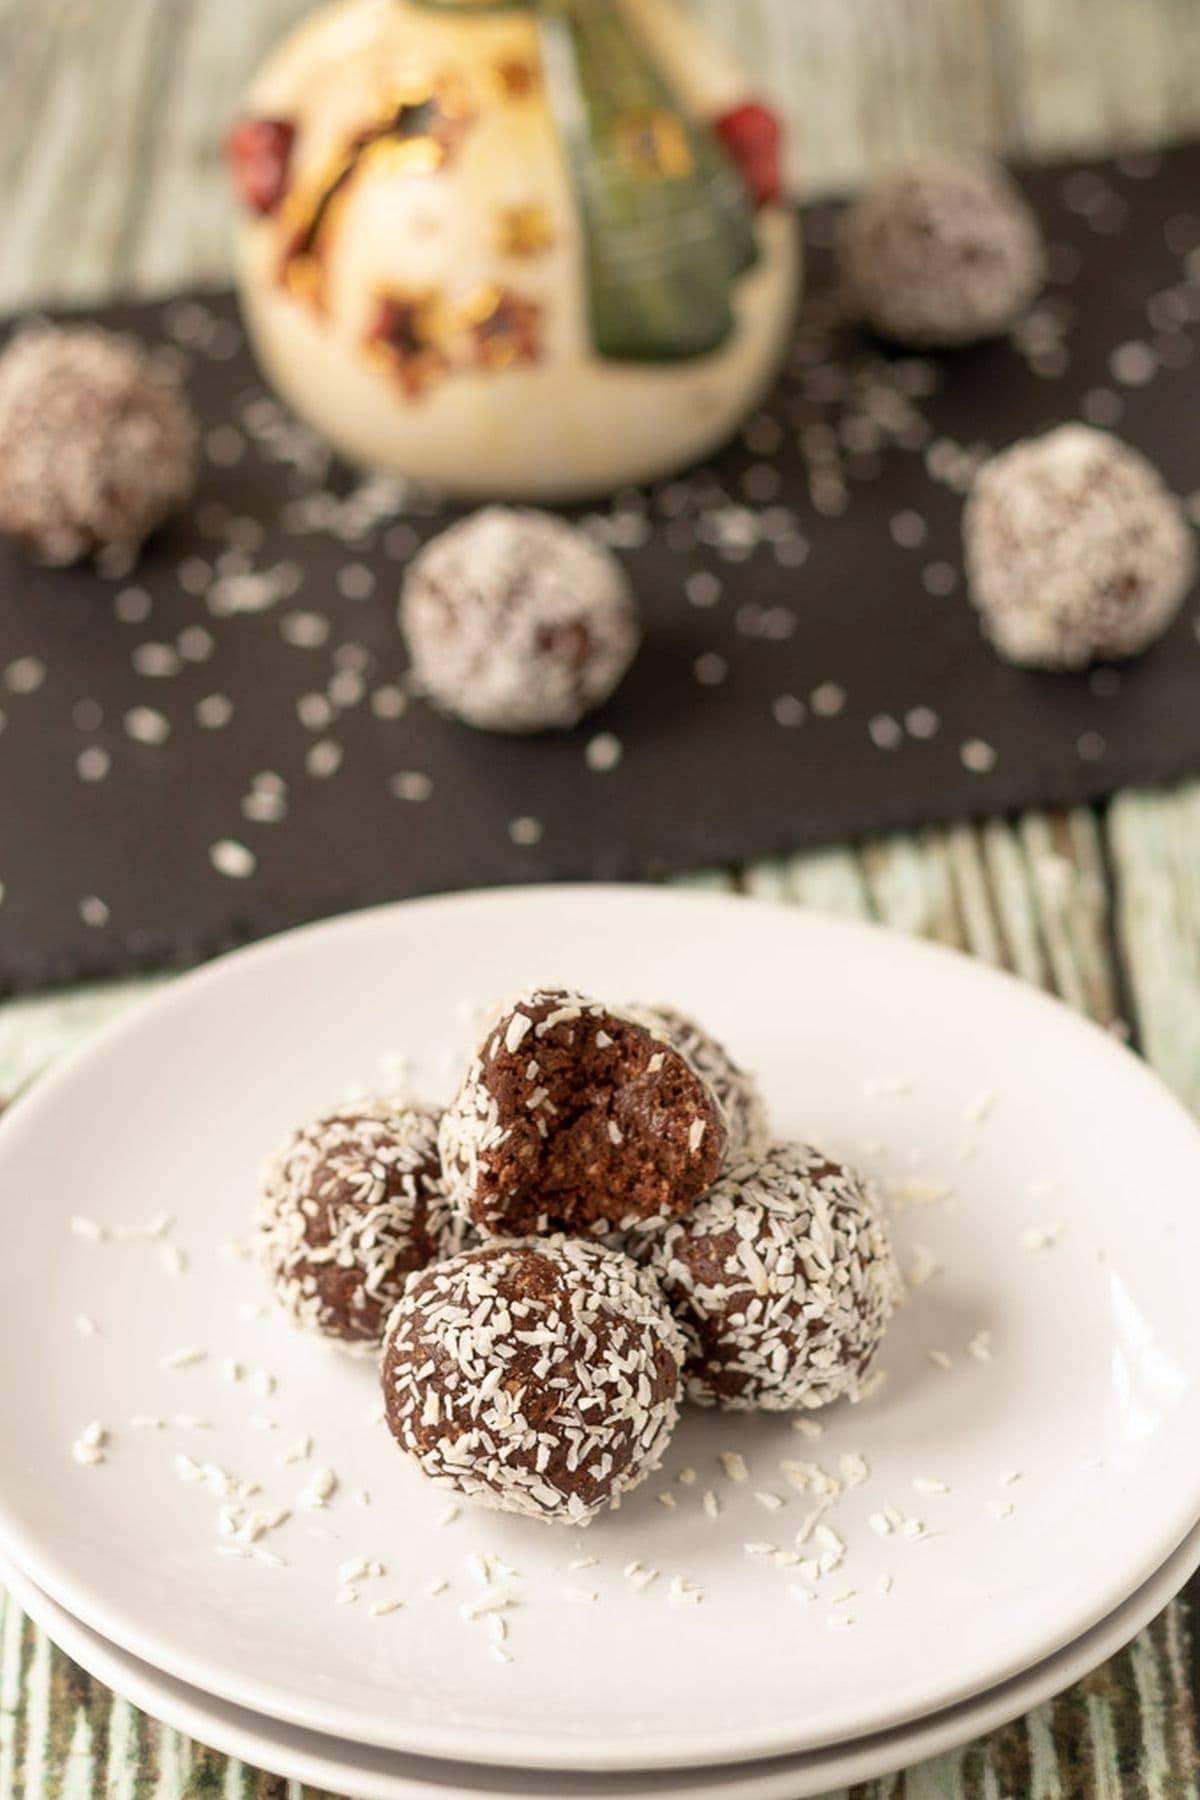 A plate of five delicious mums no bake chocolate snowballs piled up on a plate with a bite taken out of the top snowball. Rest of the snowballs on a black slate in the background.